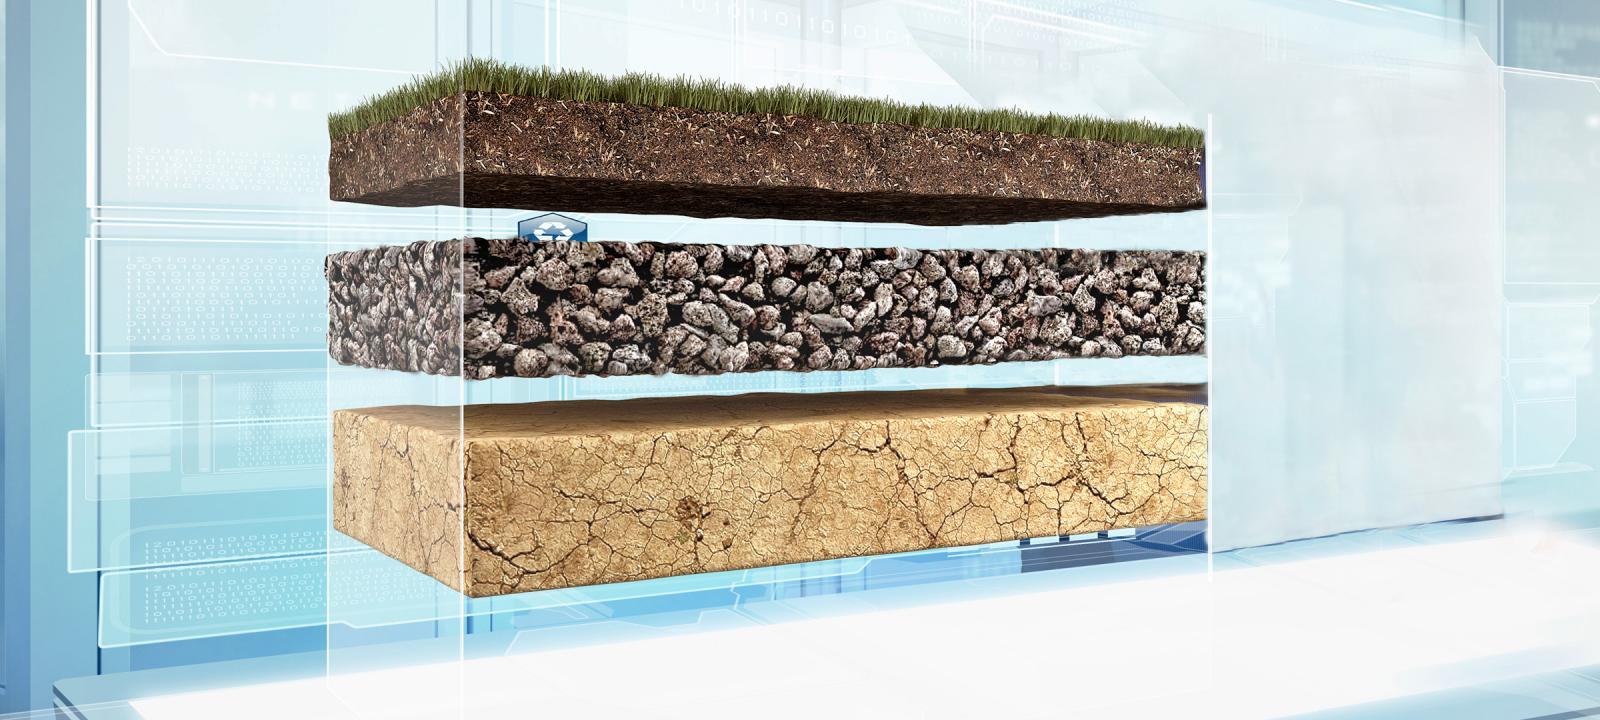 Illustrated build-up of soil layers and vegetation